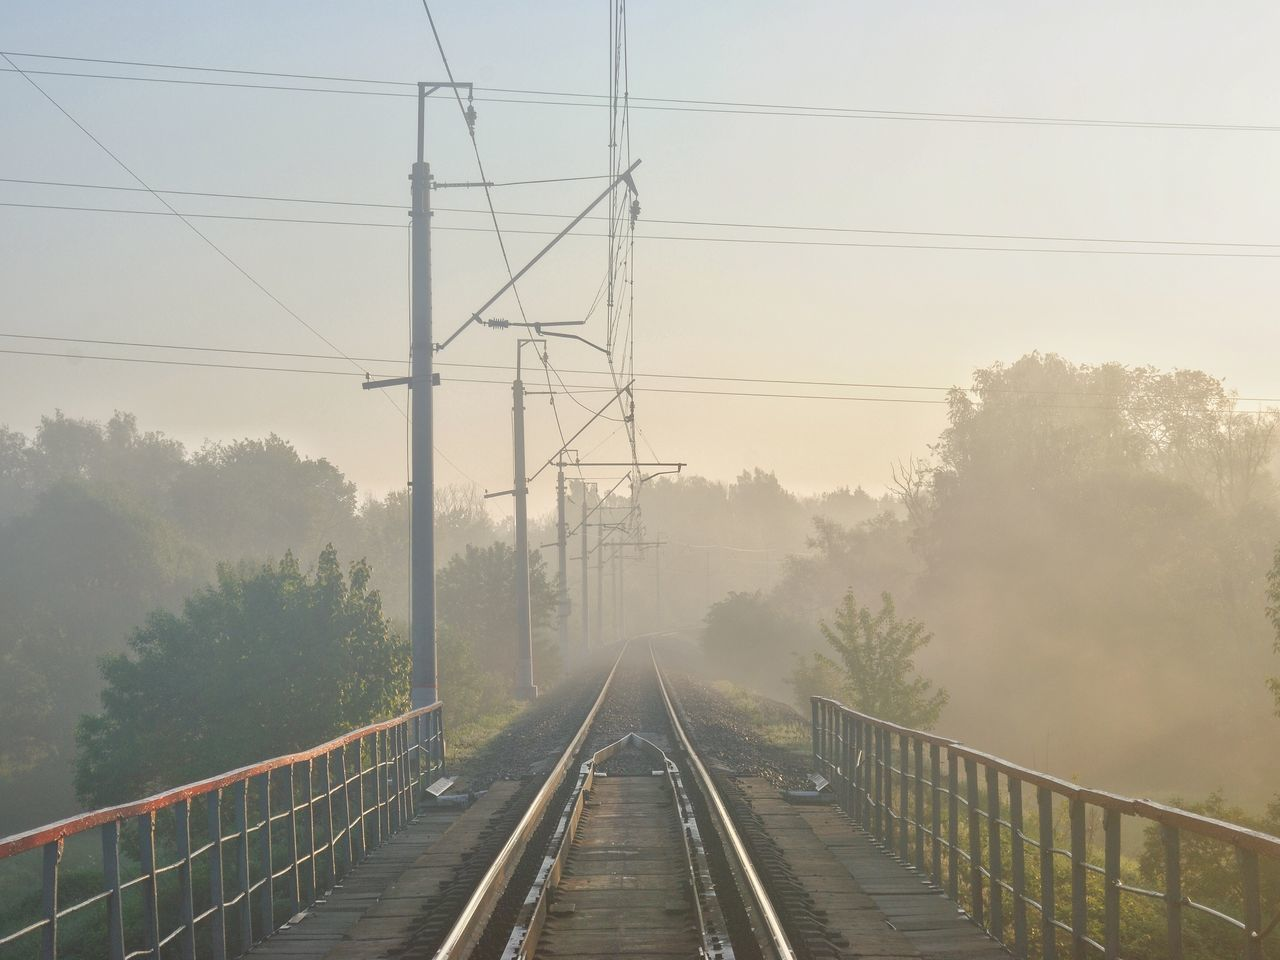 Cable Connection Diminishing Perspective Electricity  Electricity Pylon Foggy Morning Haze Hazy  Morning Morning Light Nature No People Outdoors Perspective Power Line  Power Supply Railing Railroad Track Sky The Way Forward Transportation Tree Vanishing Point Live For The Story Sommergefühle